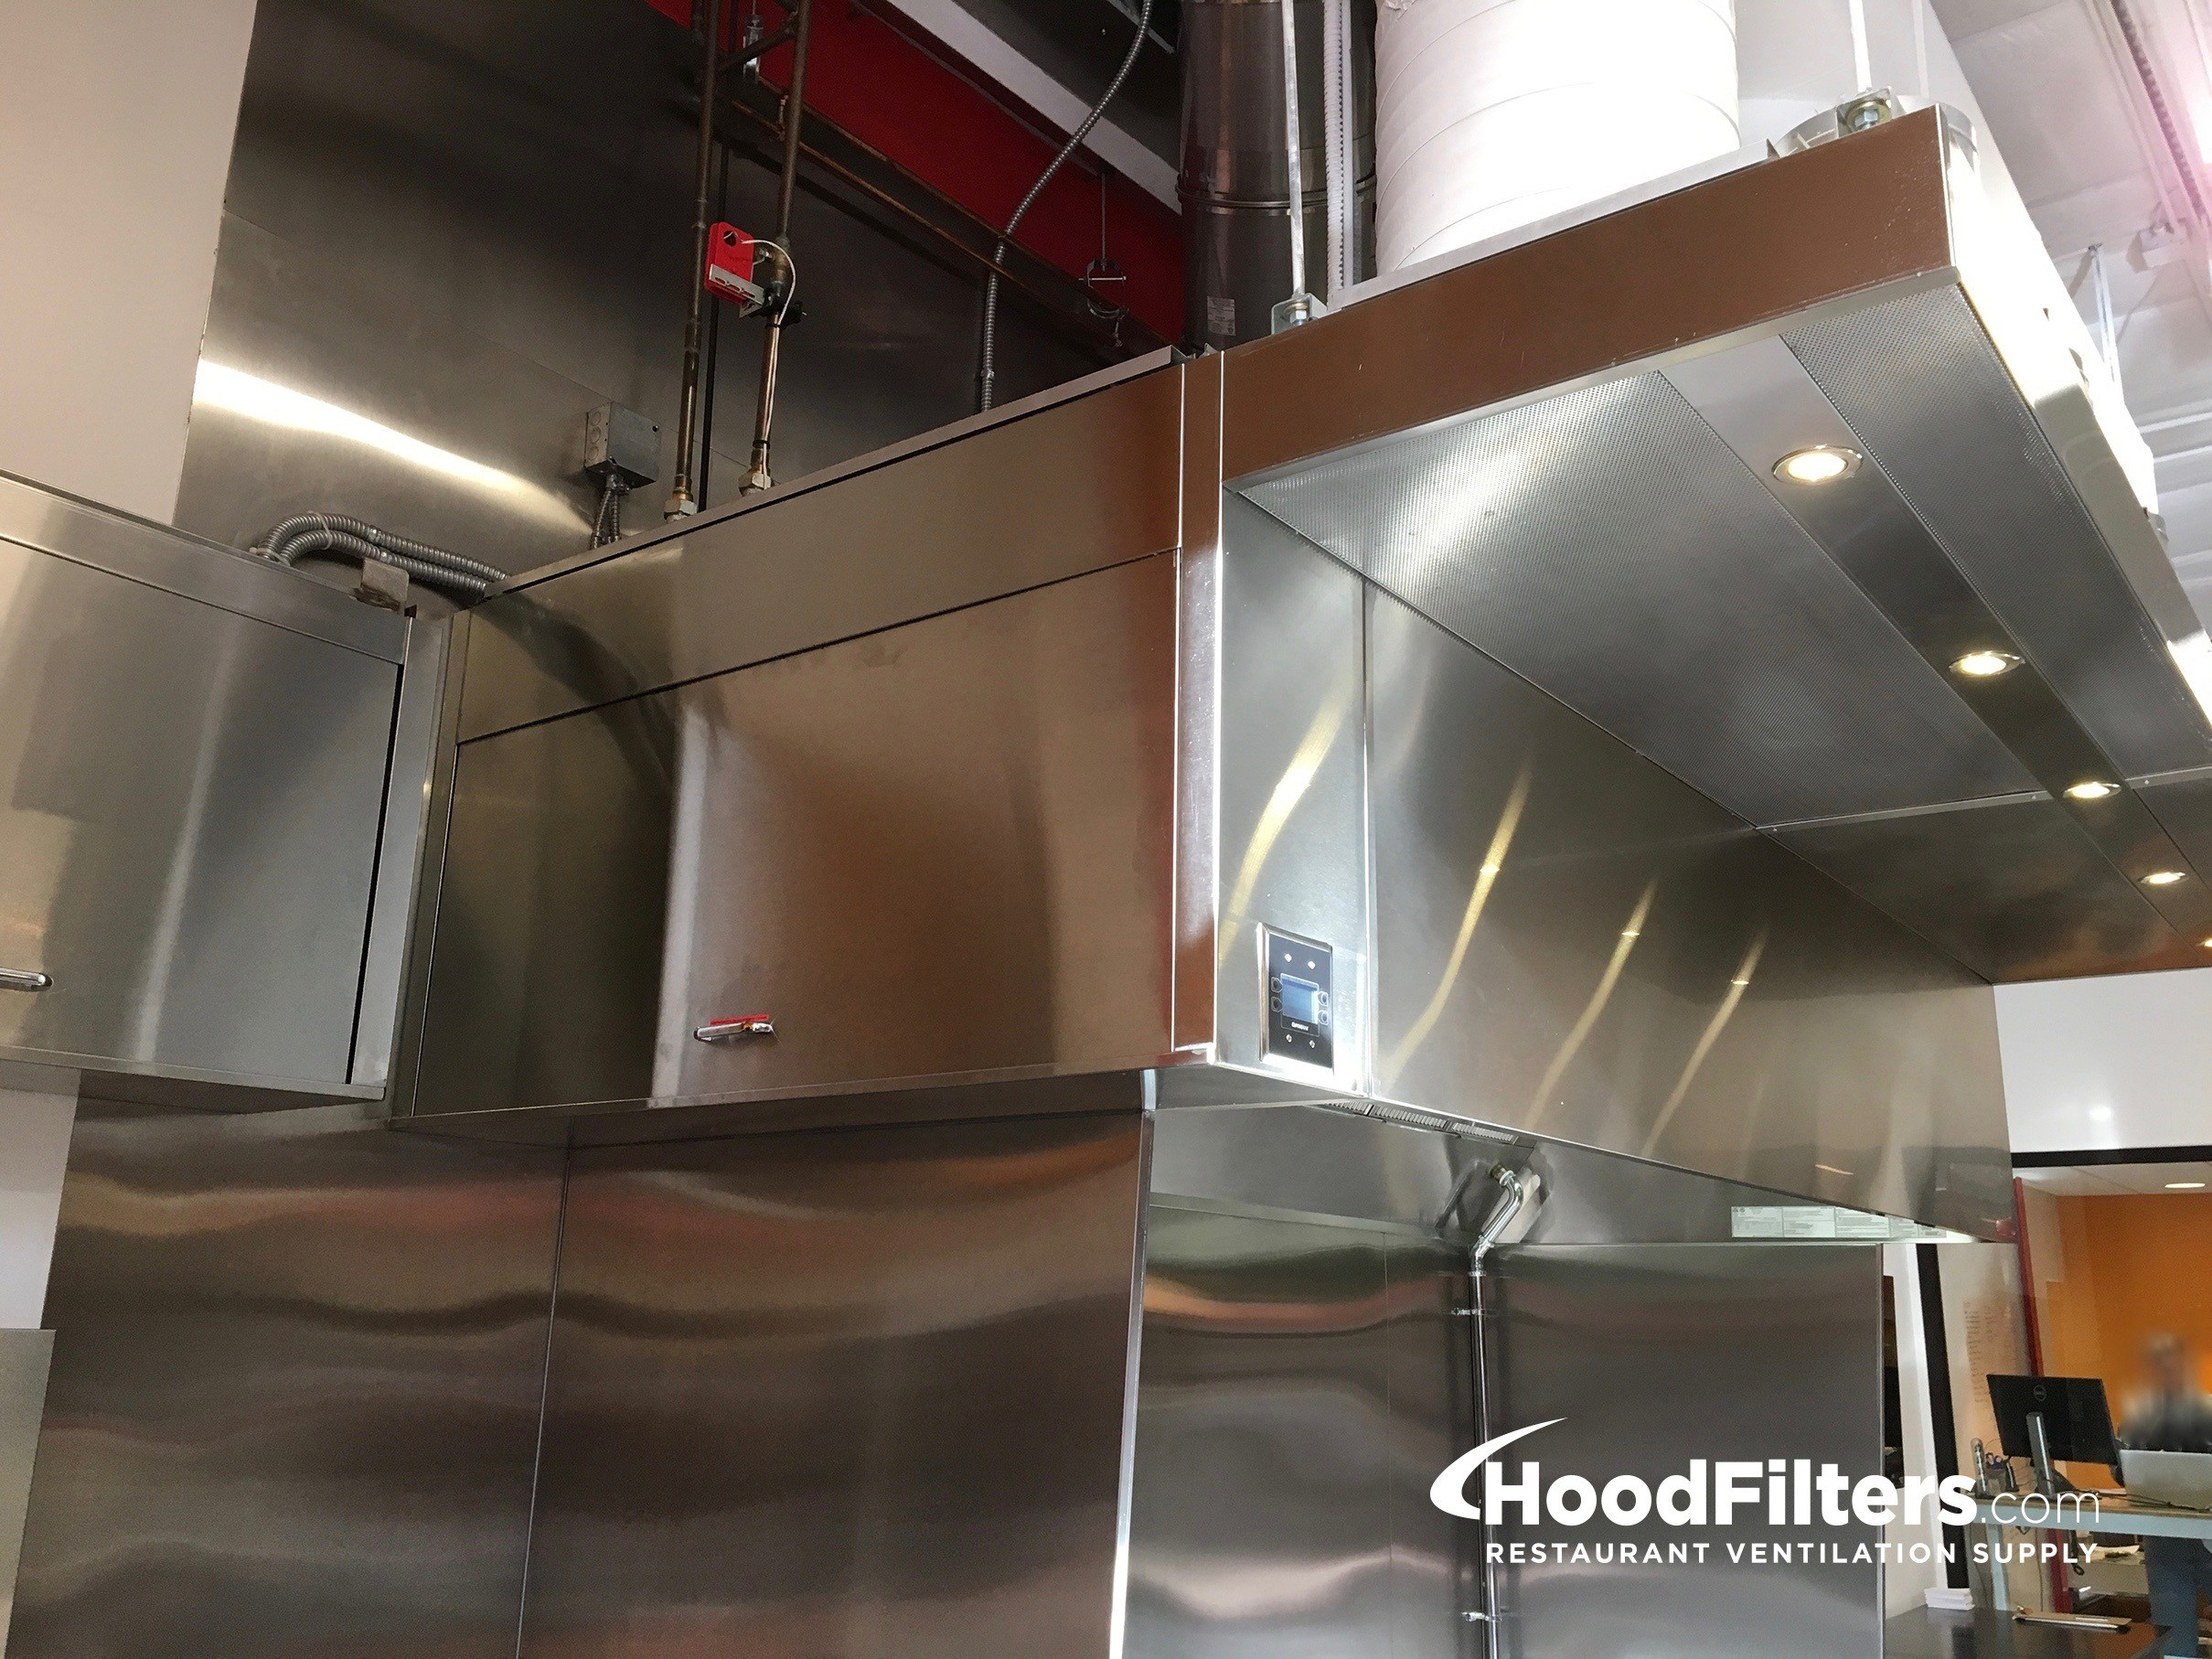 types of kitchen exhaust fans wood countertops commercial hood and fan system blogs workanyware co uk 7 type 1 rh hoodfilters com installation